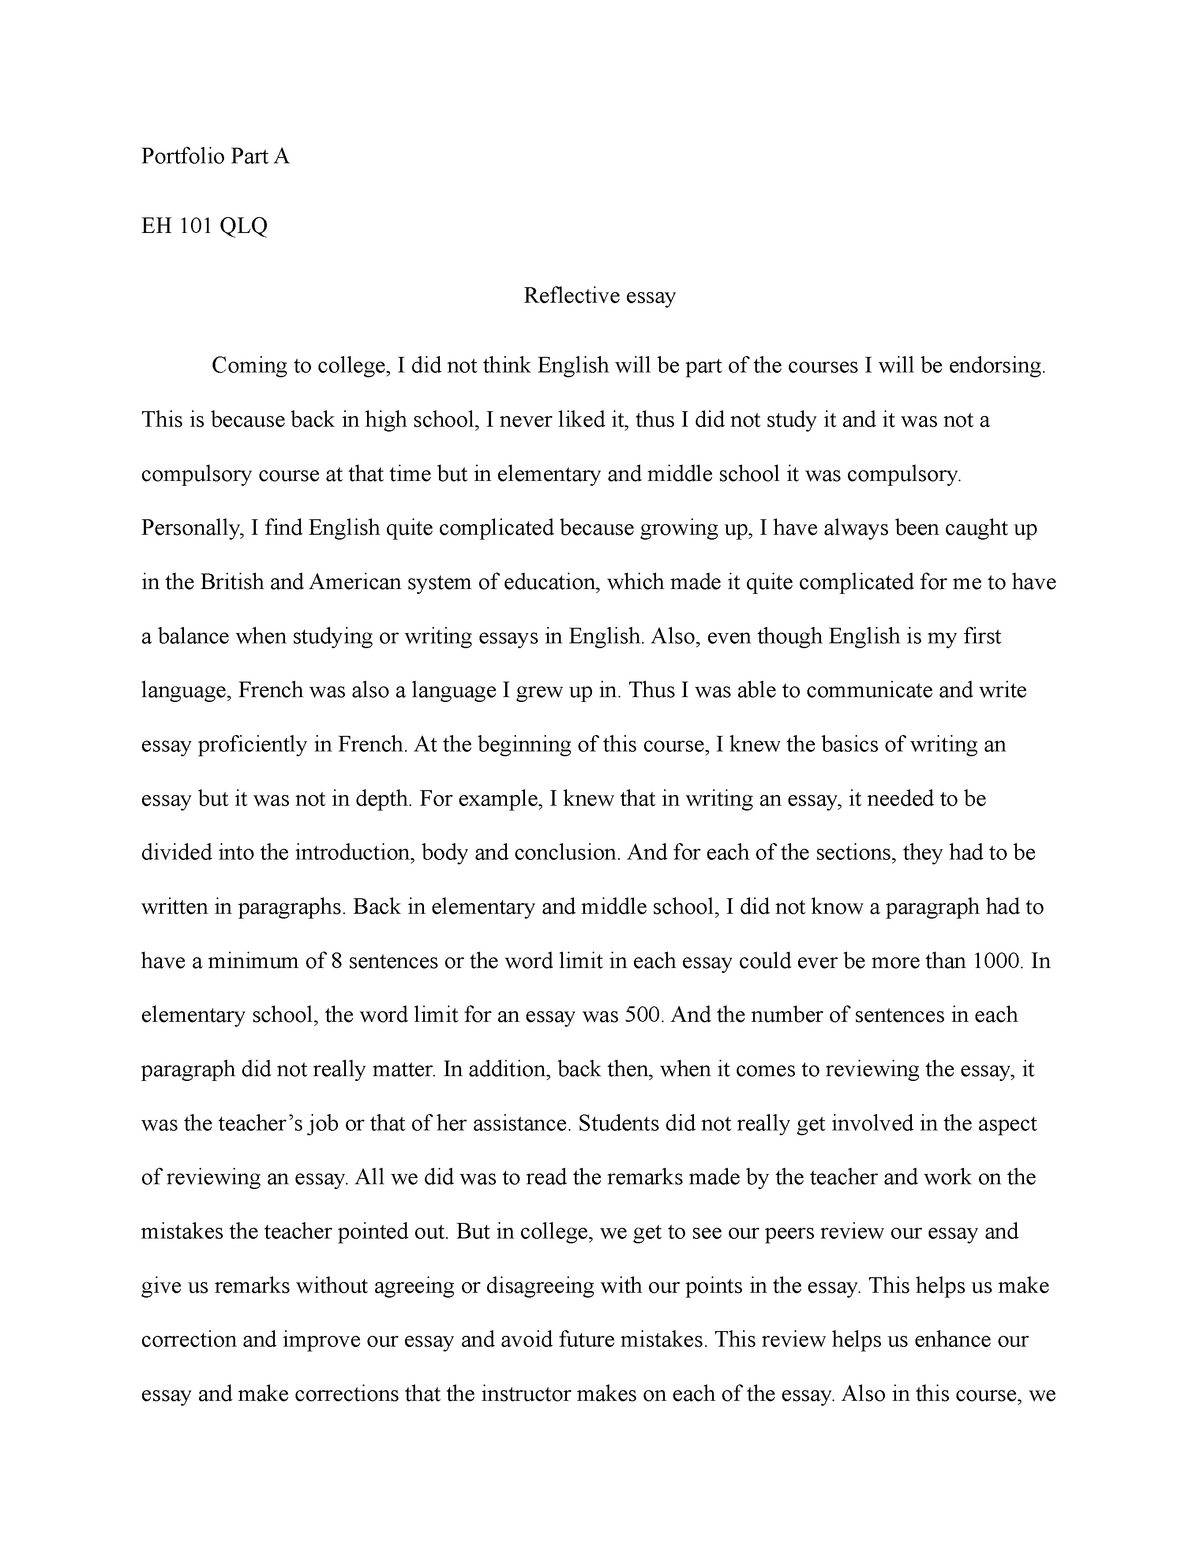 Library Essay In English  Essay About Science also What Is The Thesis Of A Research Essay Part A Reflective Essay  Eh  English Composition I  Uab  English Essay Writing Examples